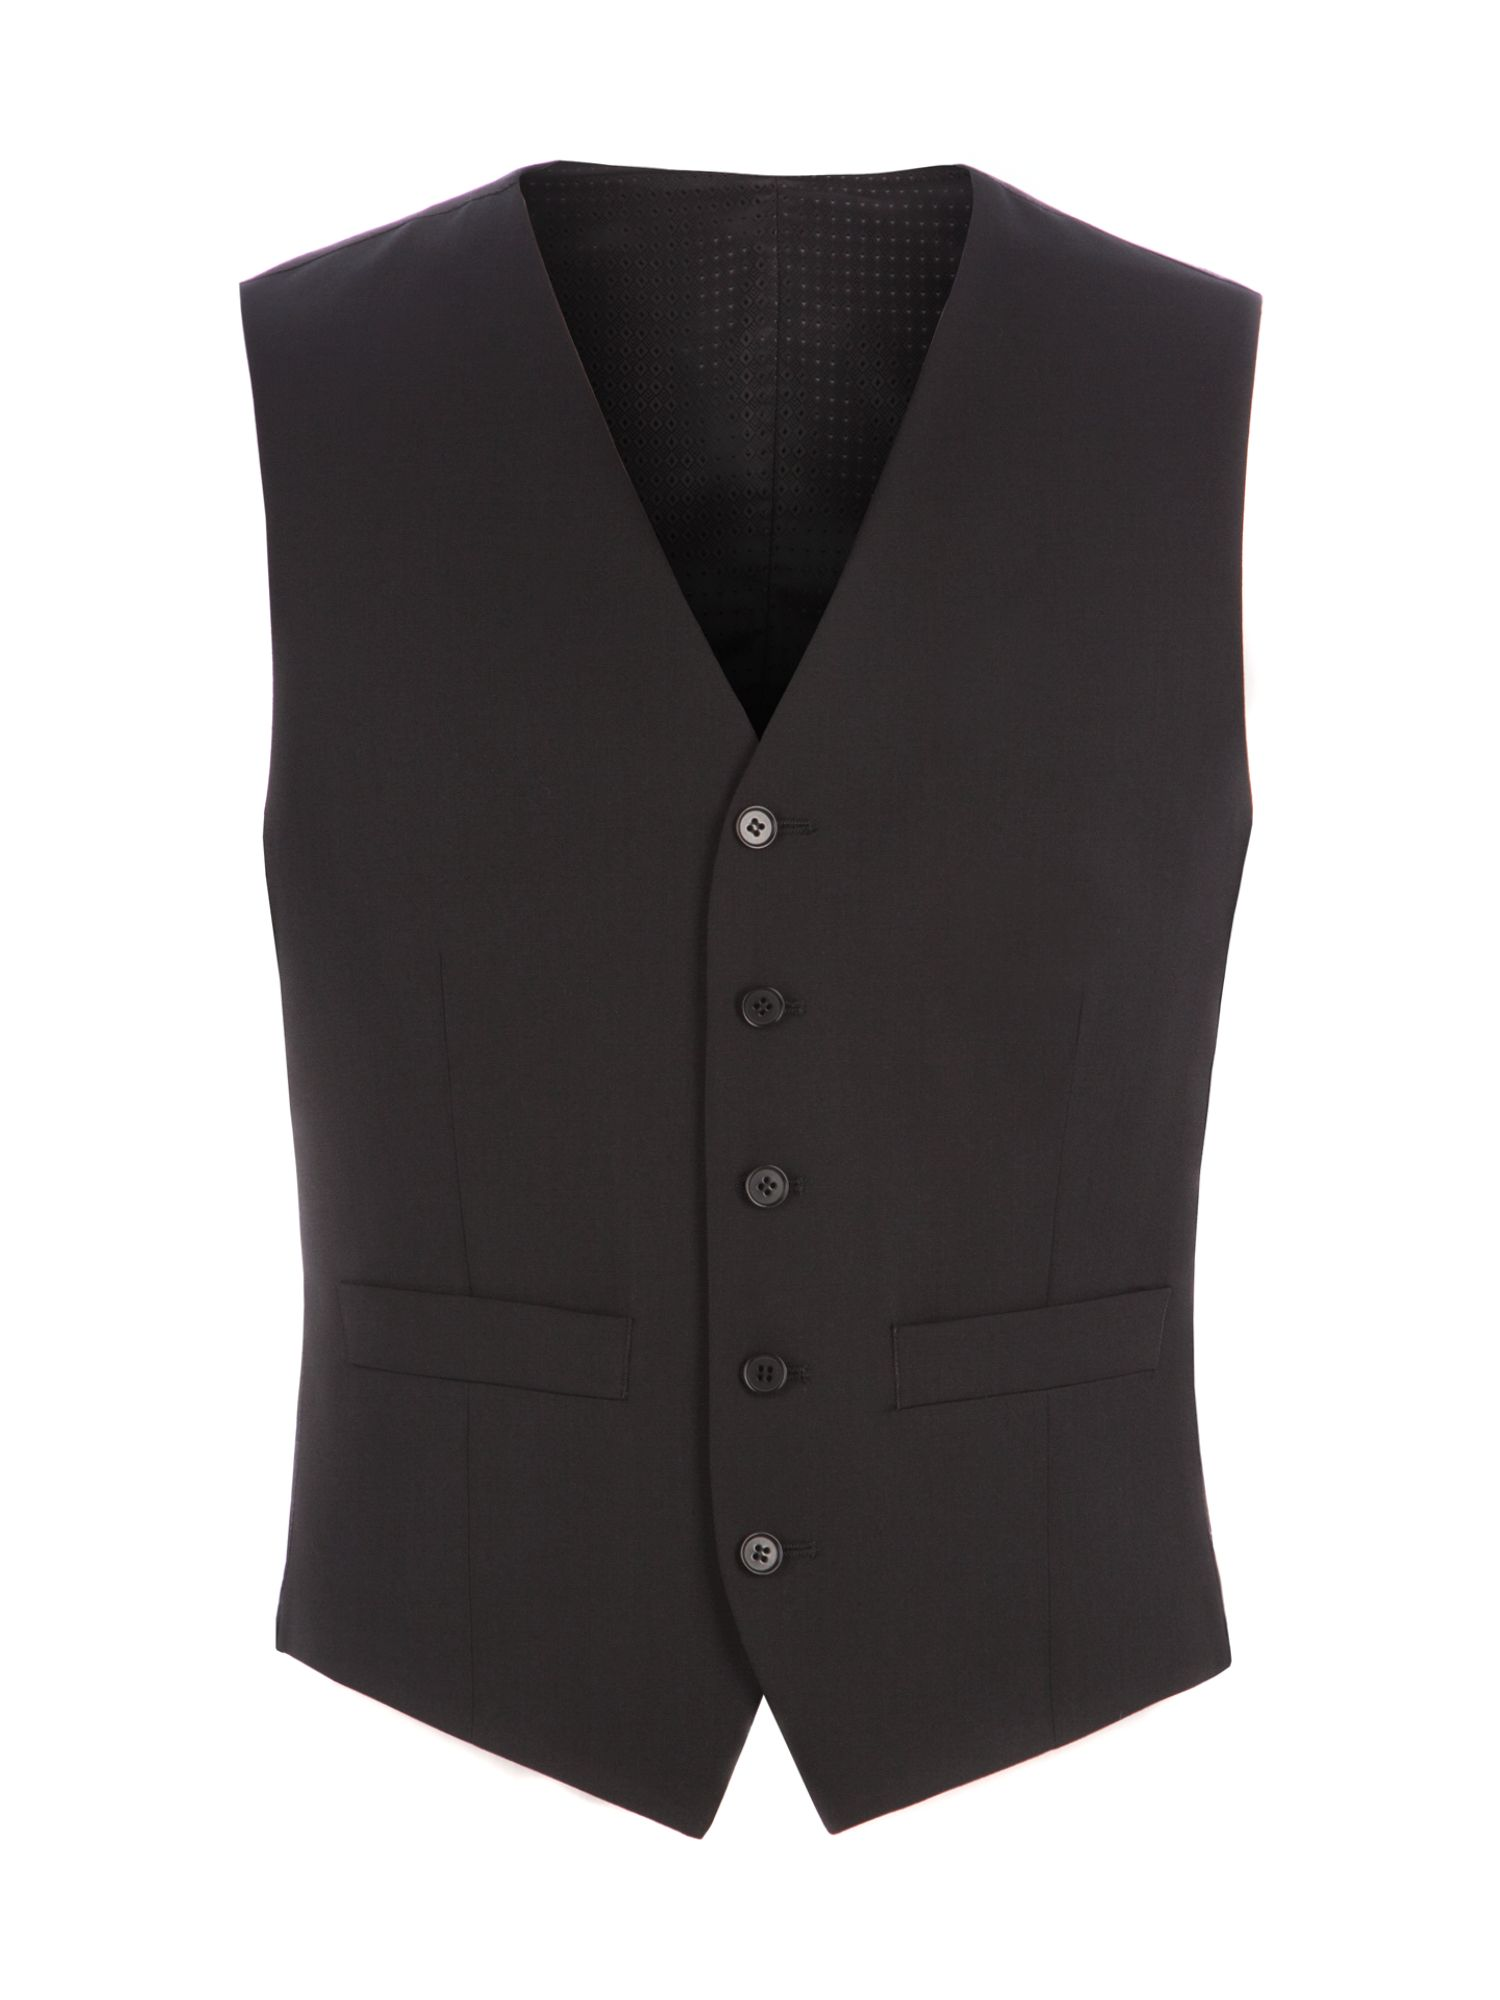 Men's Pierre Cardin Philip Black Twill Performance Vest, Black